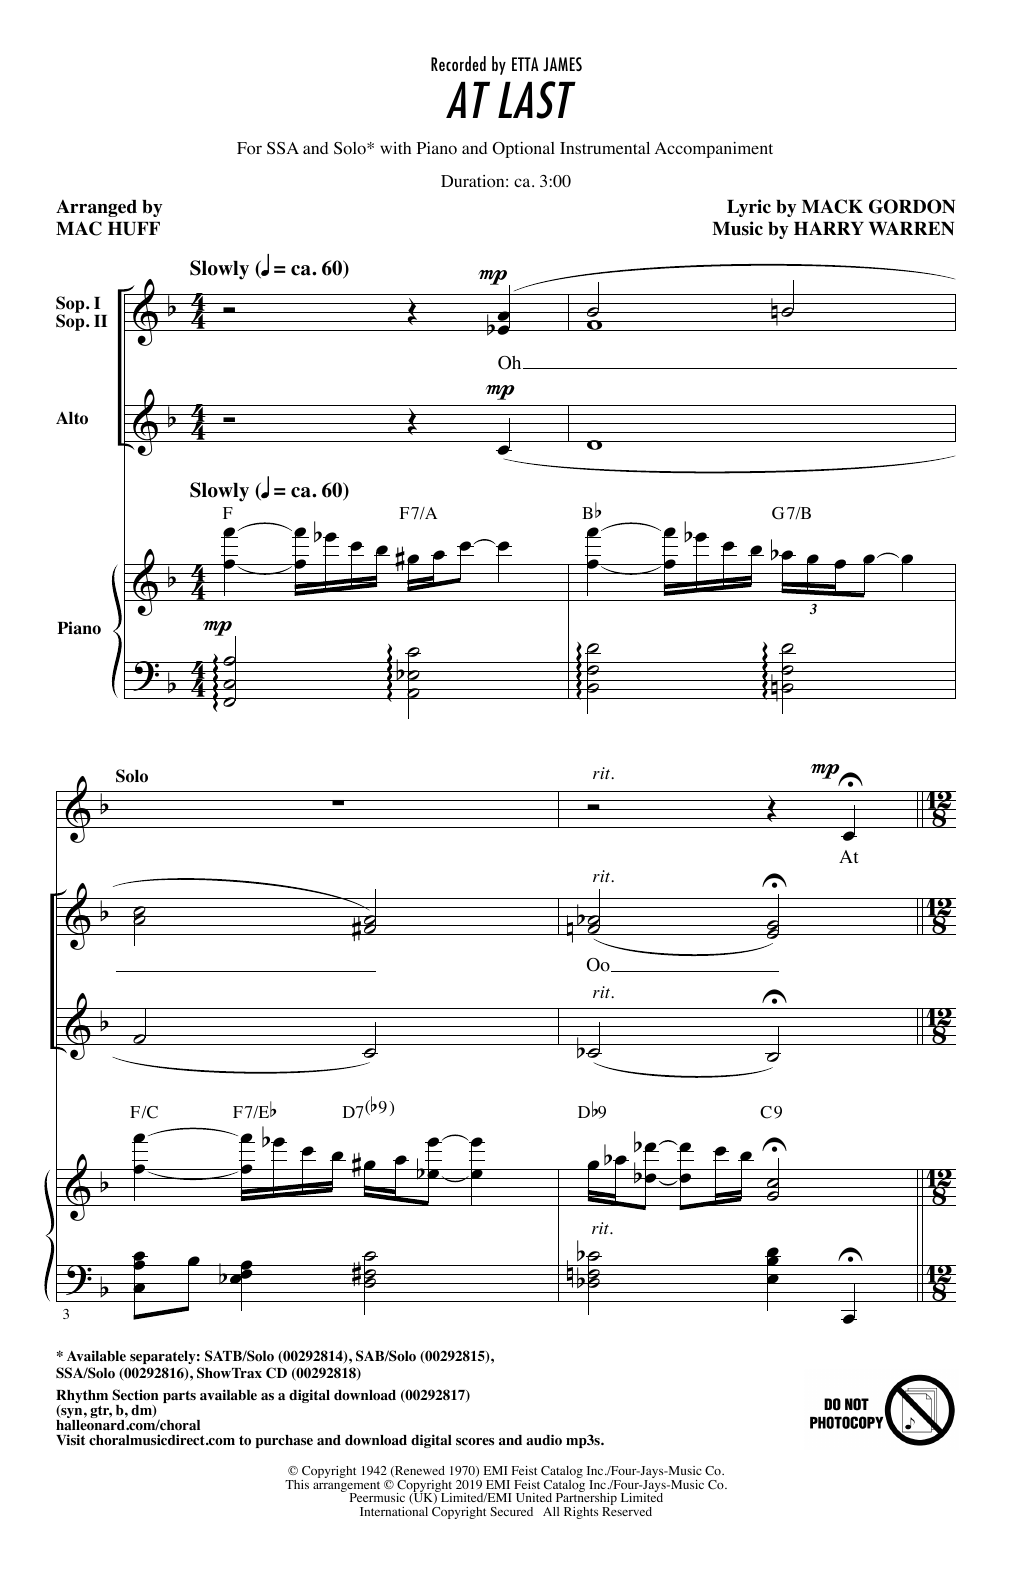 Etta James At Last (arr. Mac Huff) sheet music notes and chords. Download Printable PDF.